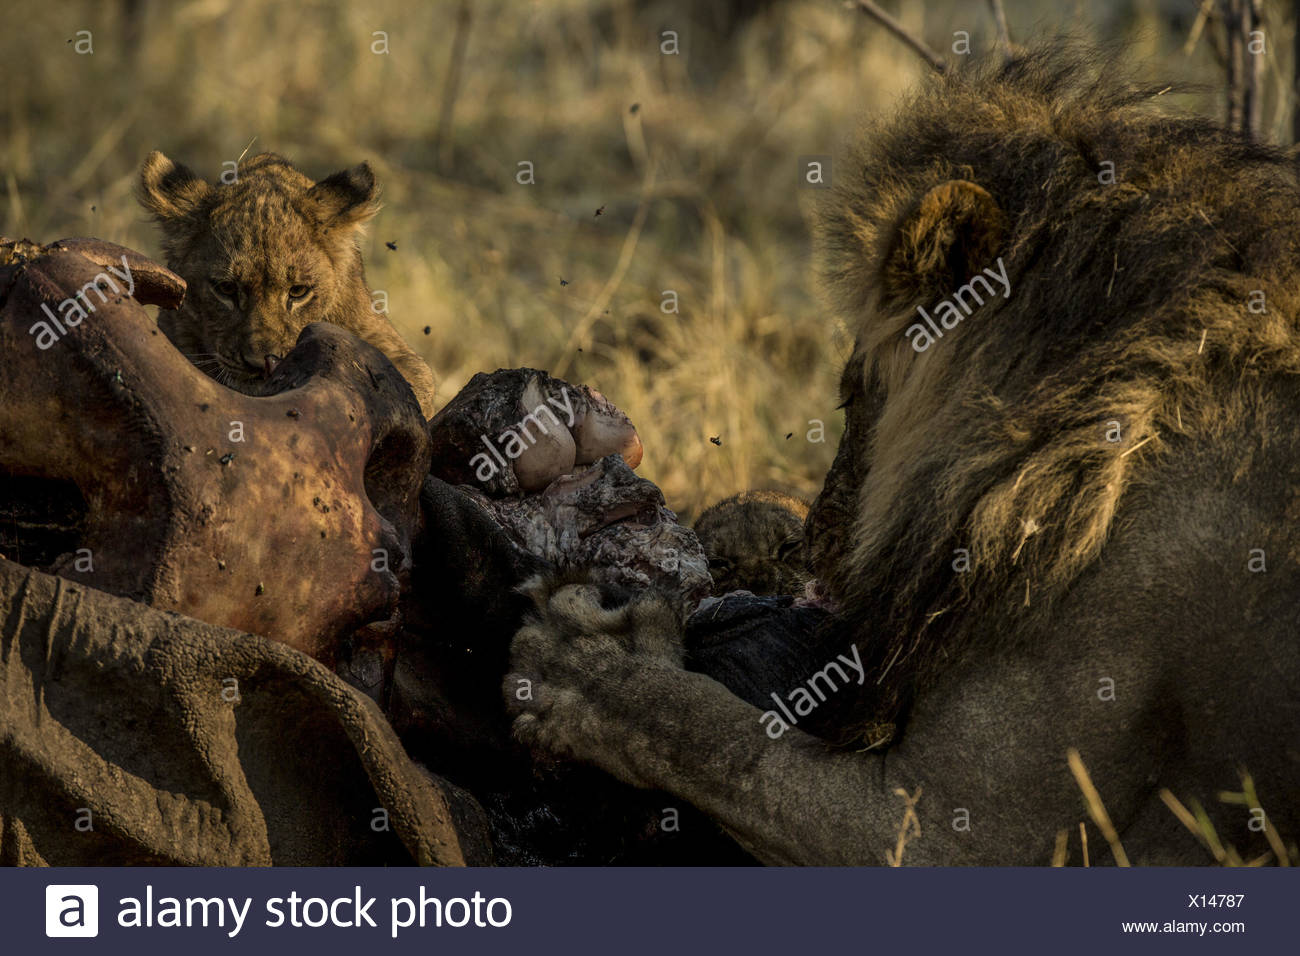 A lion, Panthera leo, and cubs feed on the face of an elephant, Loxodonta africana, carcass. - Stock Image